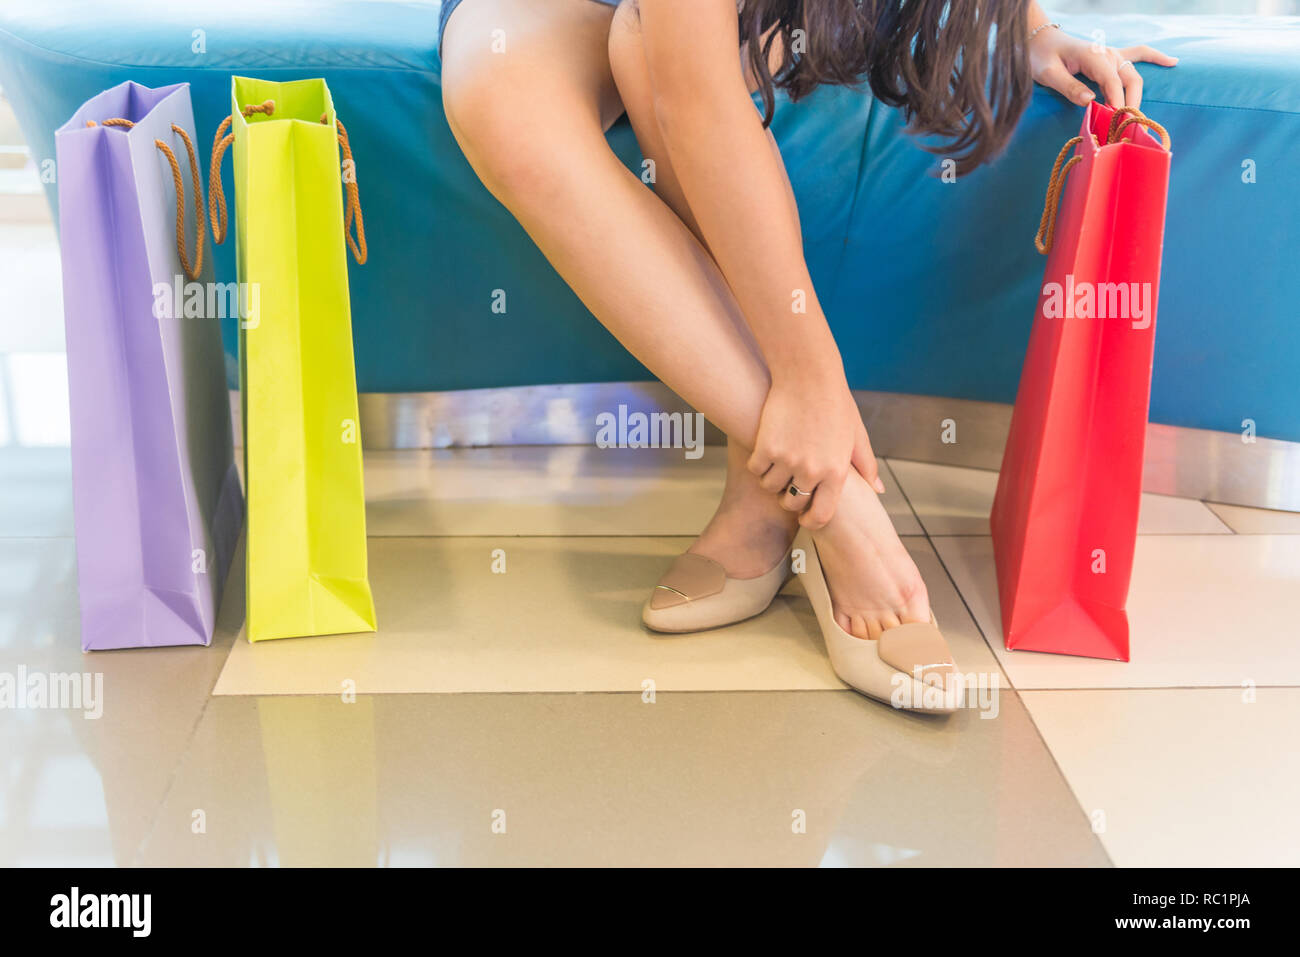 Foot soreness and inflammation - Stock Image